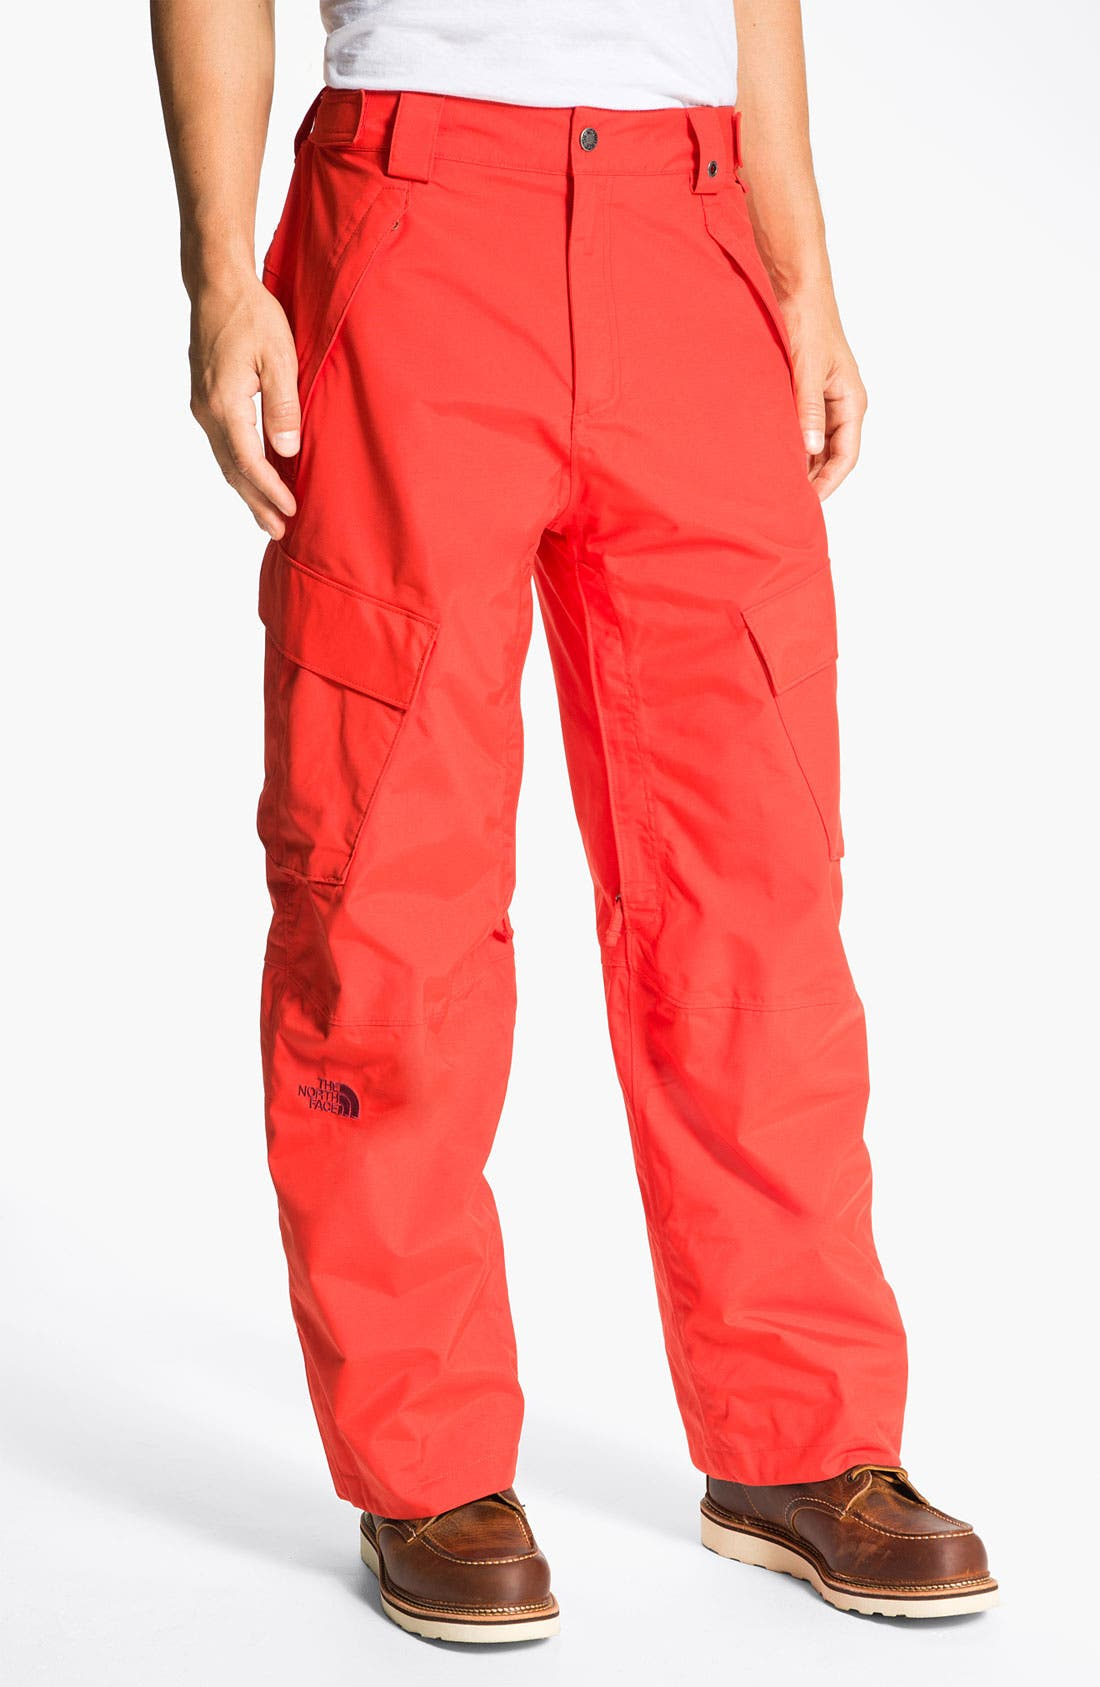 Alternate Image 1 Selected - The North Face 'Slasher' Cargo Ski Pants (Online Only)